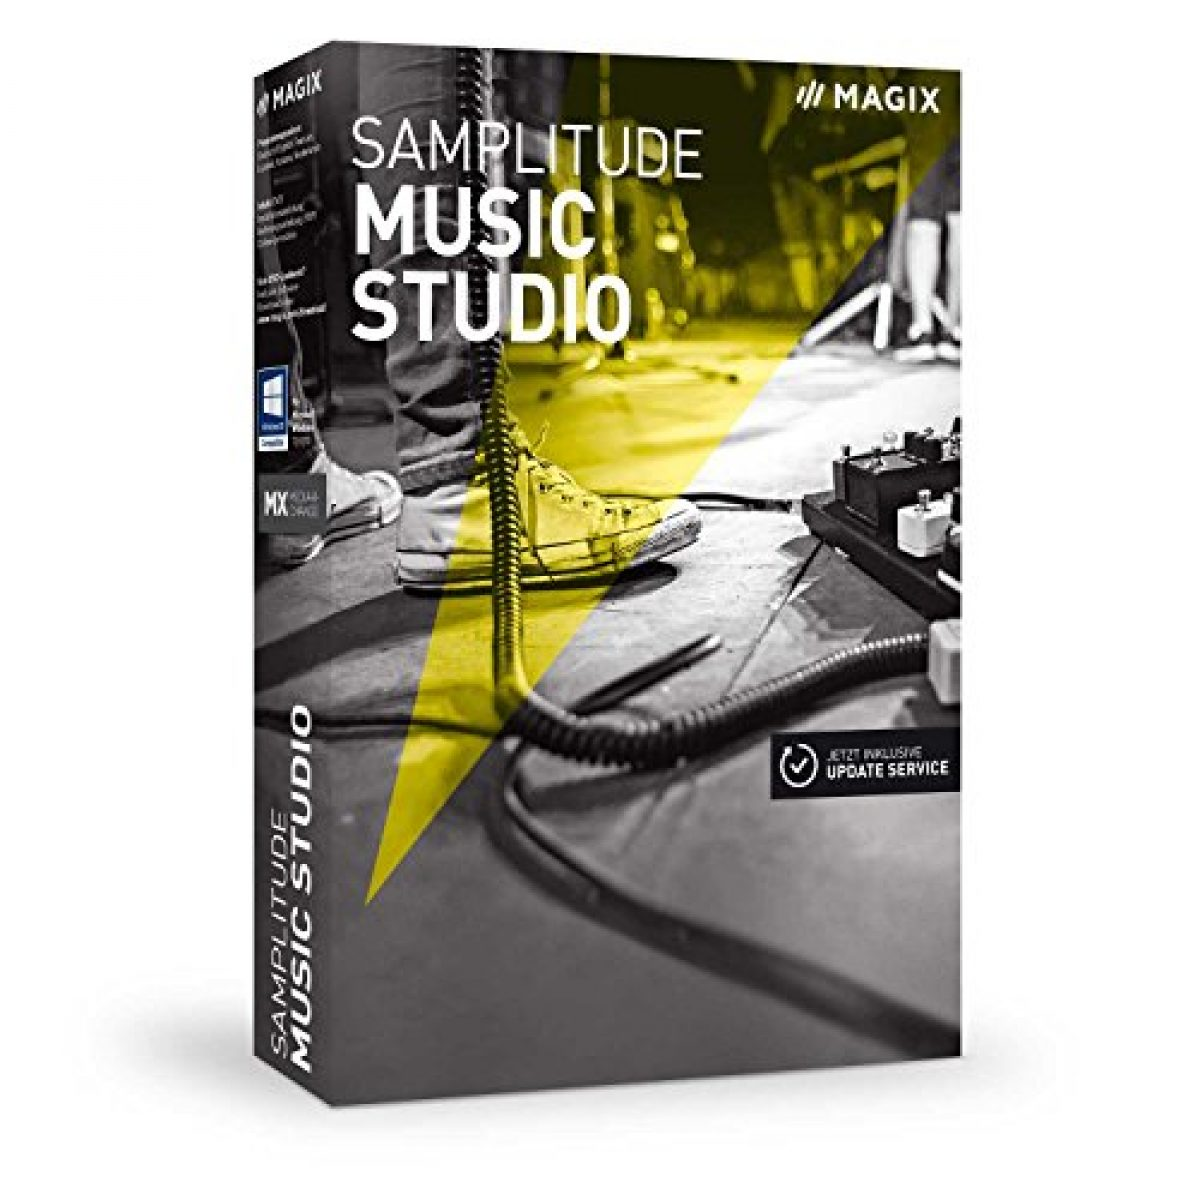 MUSIC TÉLÉCHARGER MAGIX MX GRATUIT STUDIO SAMPLITUDE